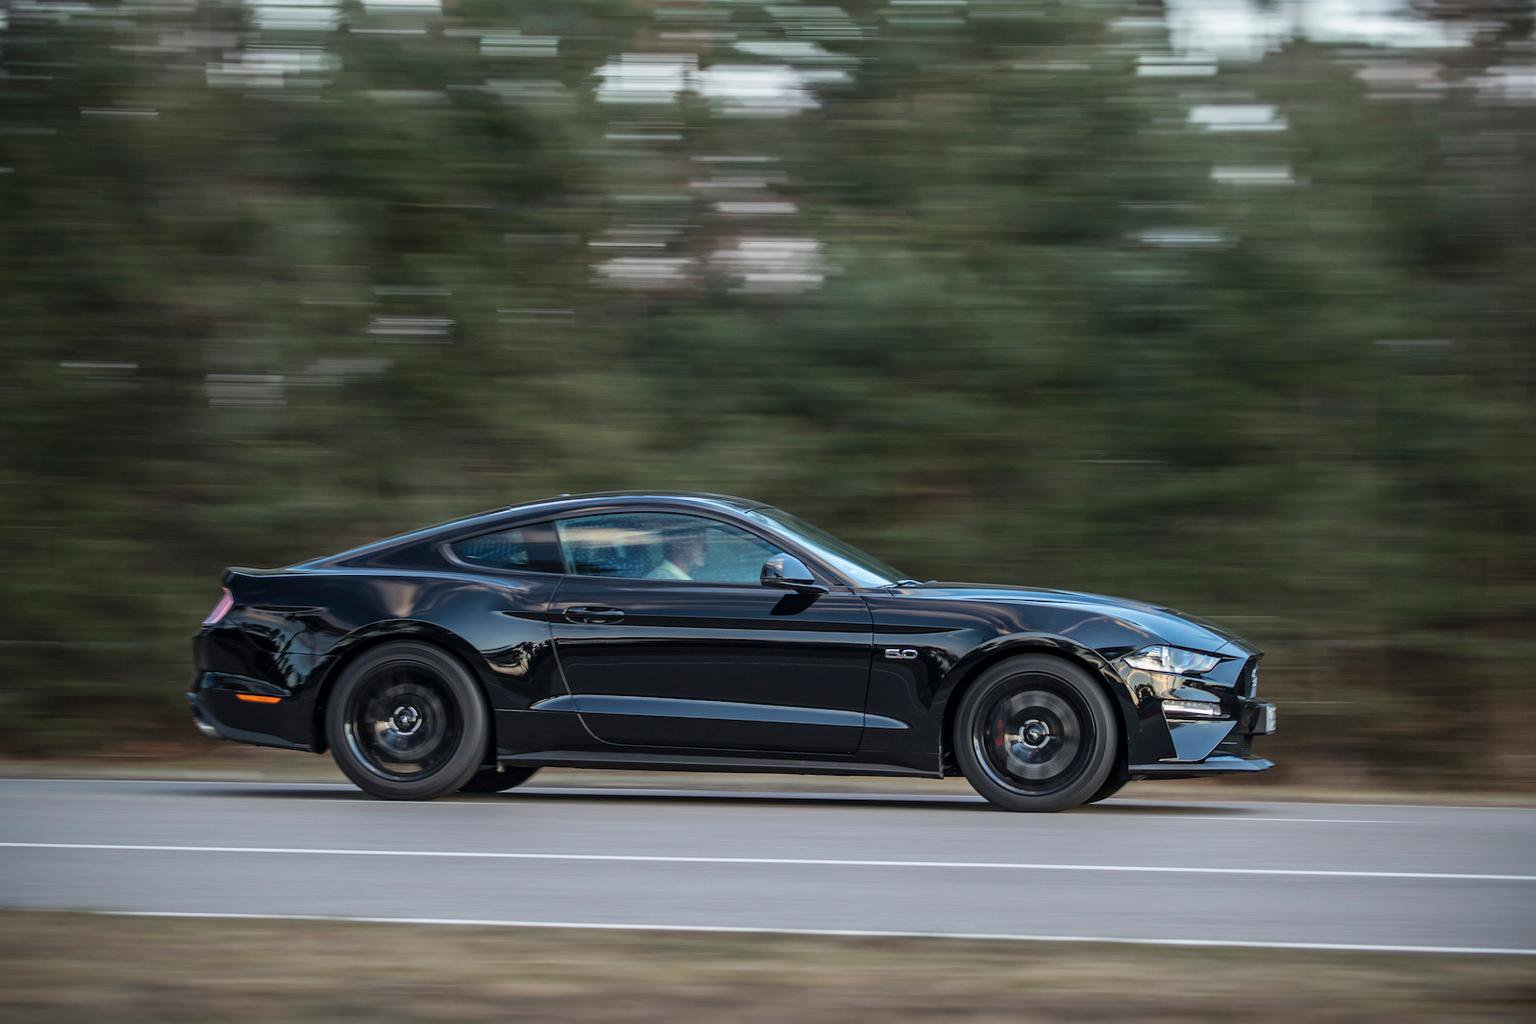 2018 Ford Mustang GT review - verdict